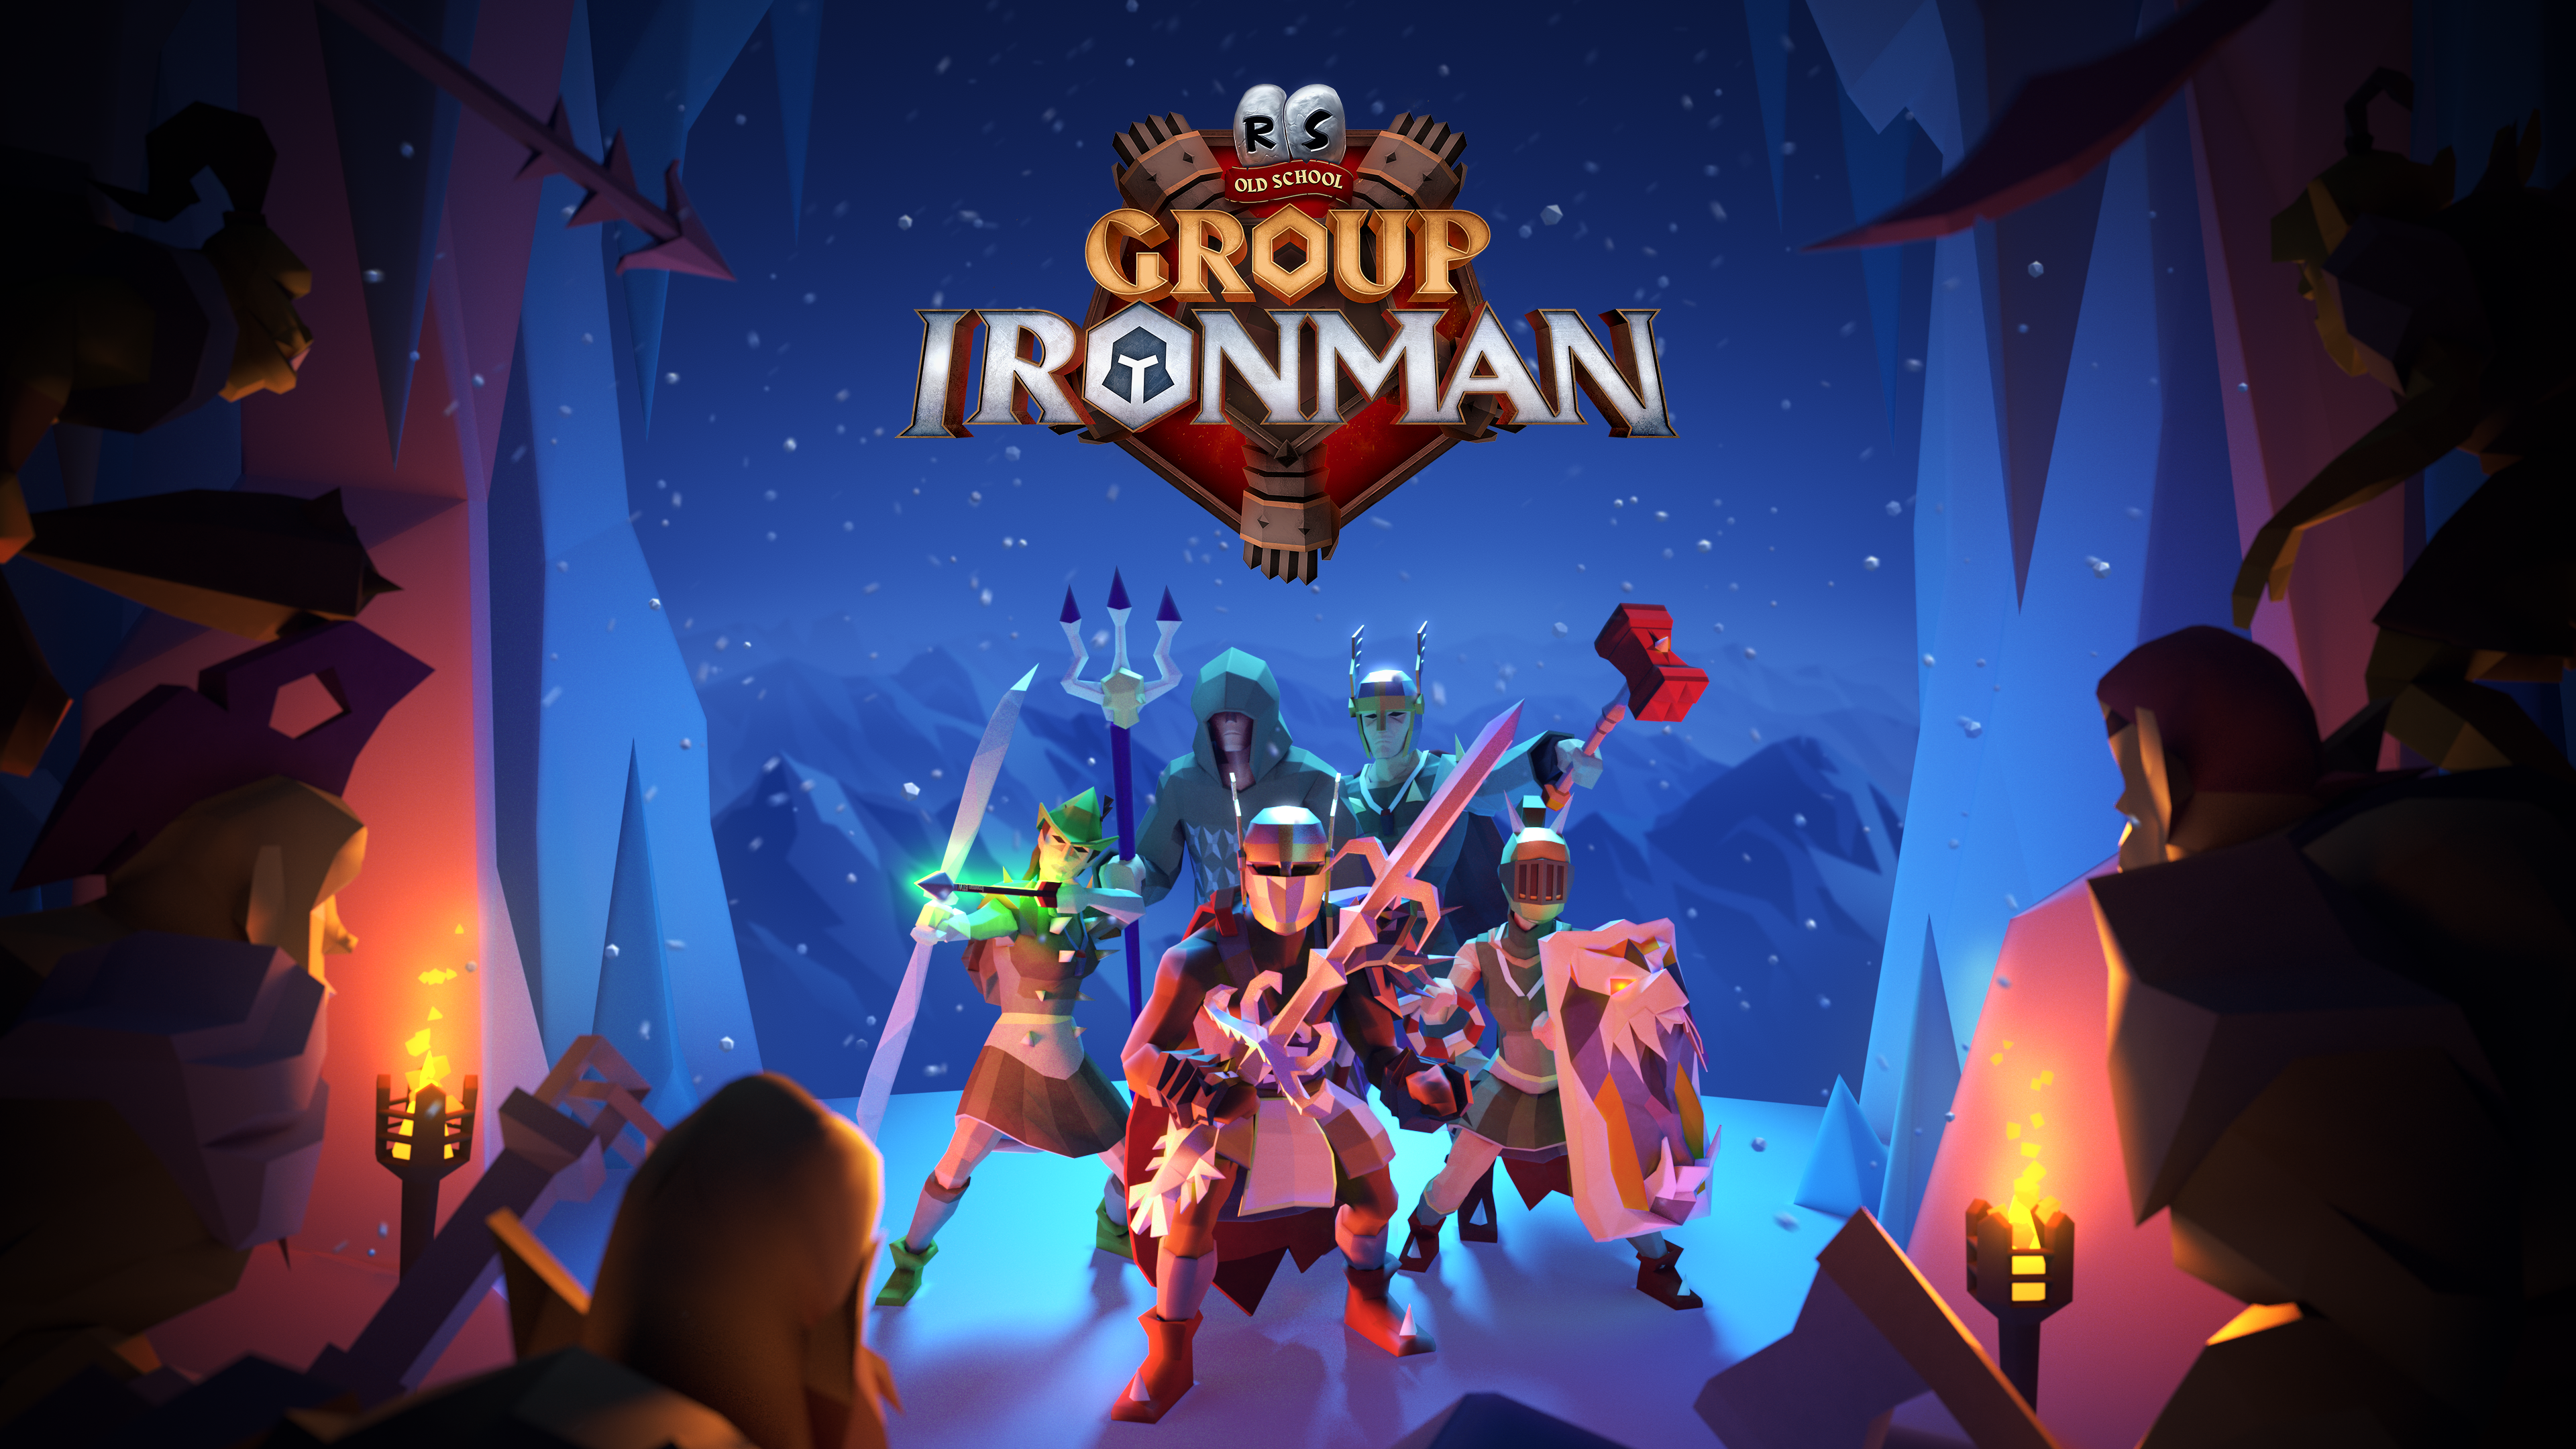 Group Ironman is Live in Old School Runescape